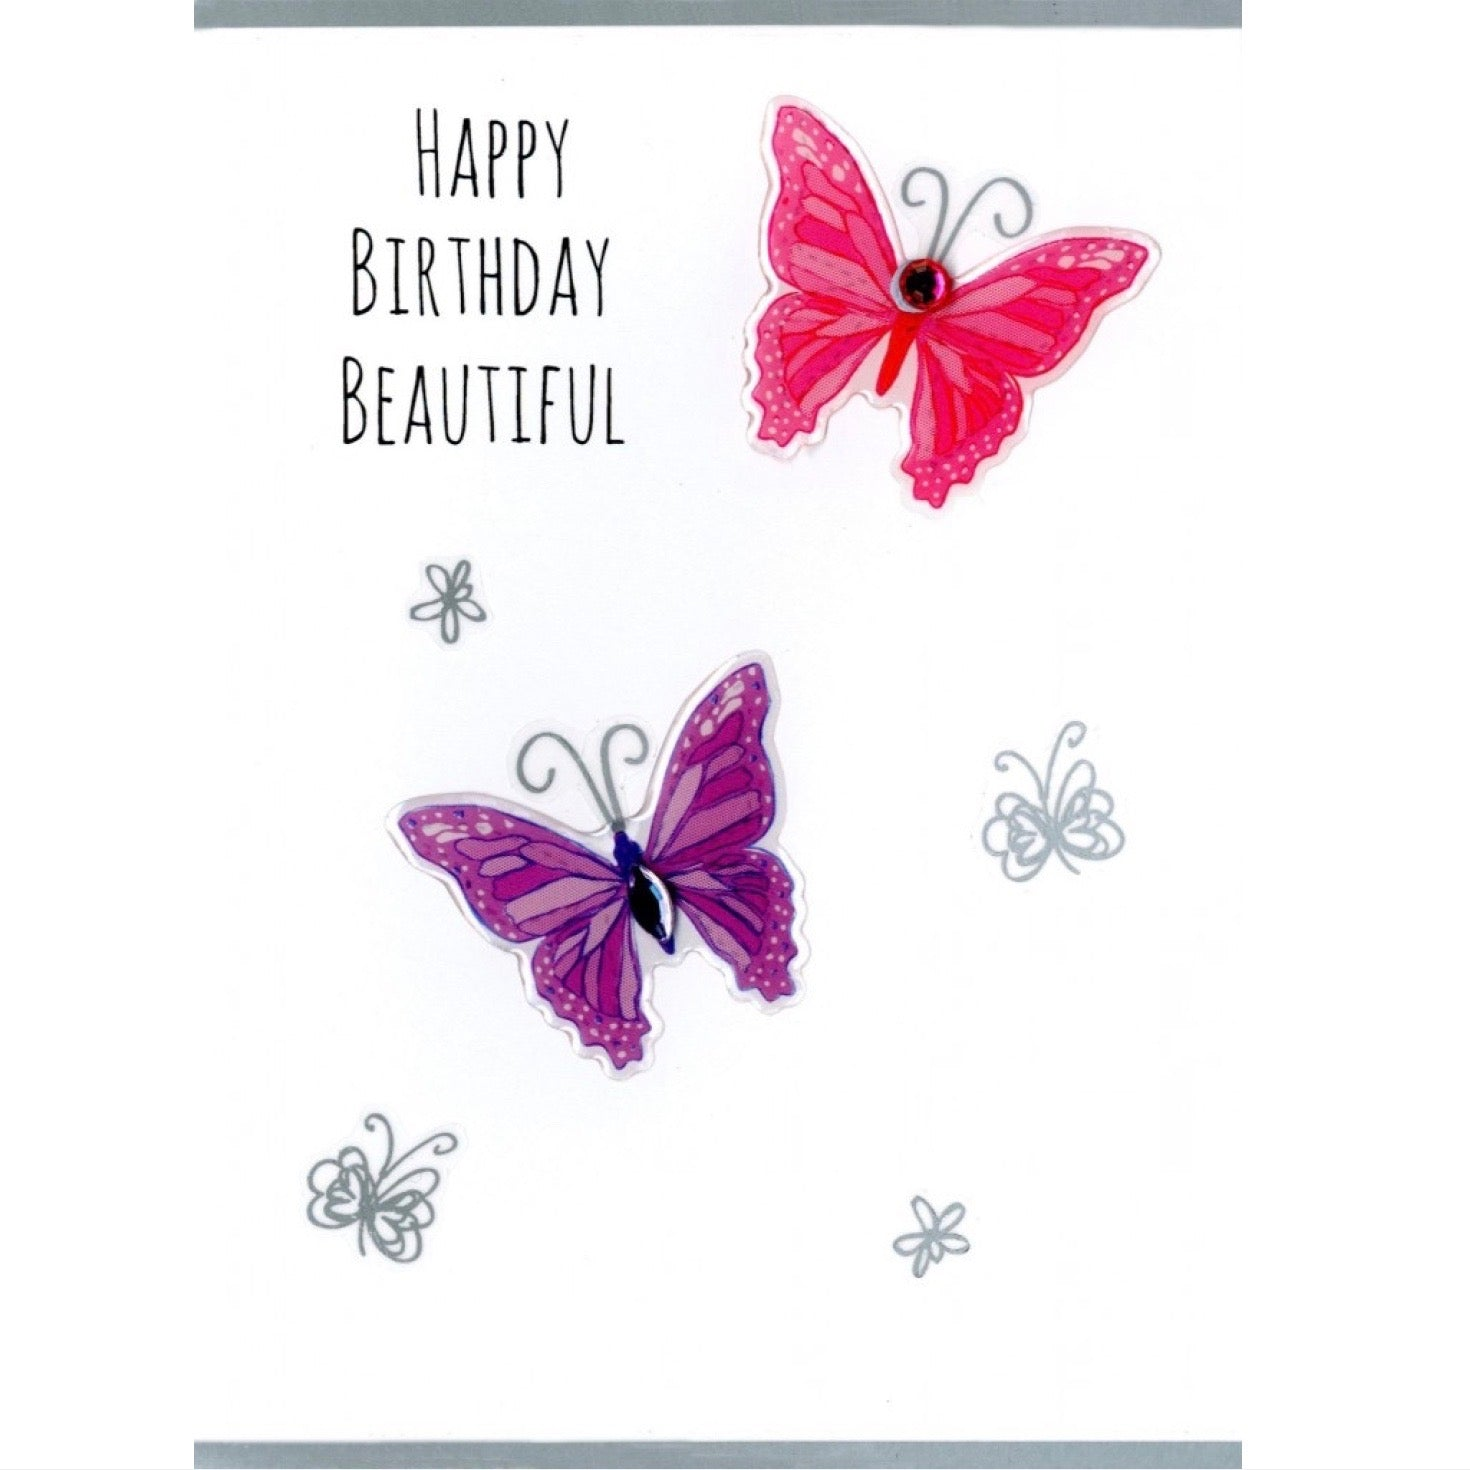 """Happy Birthday Beautiful"" Butterfly Greeting Card 